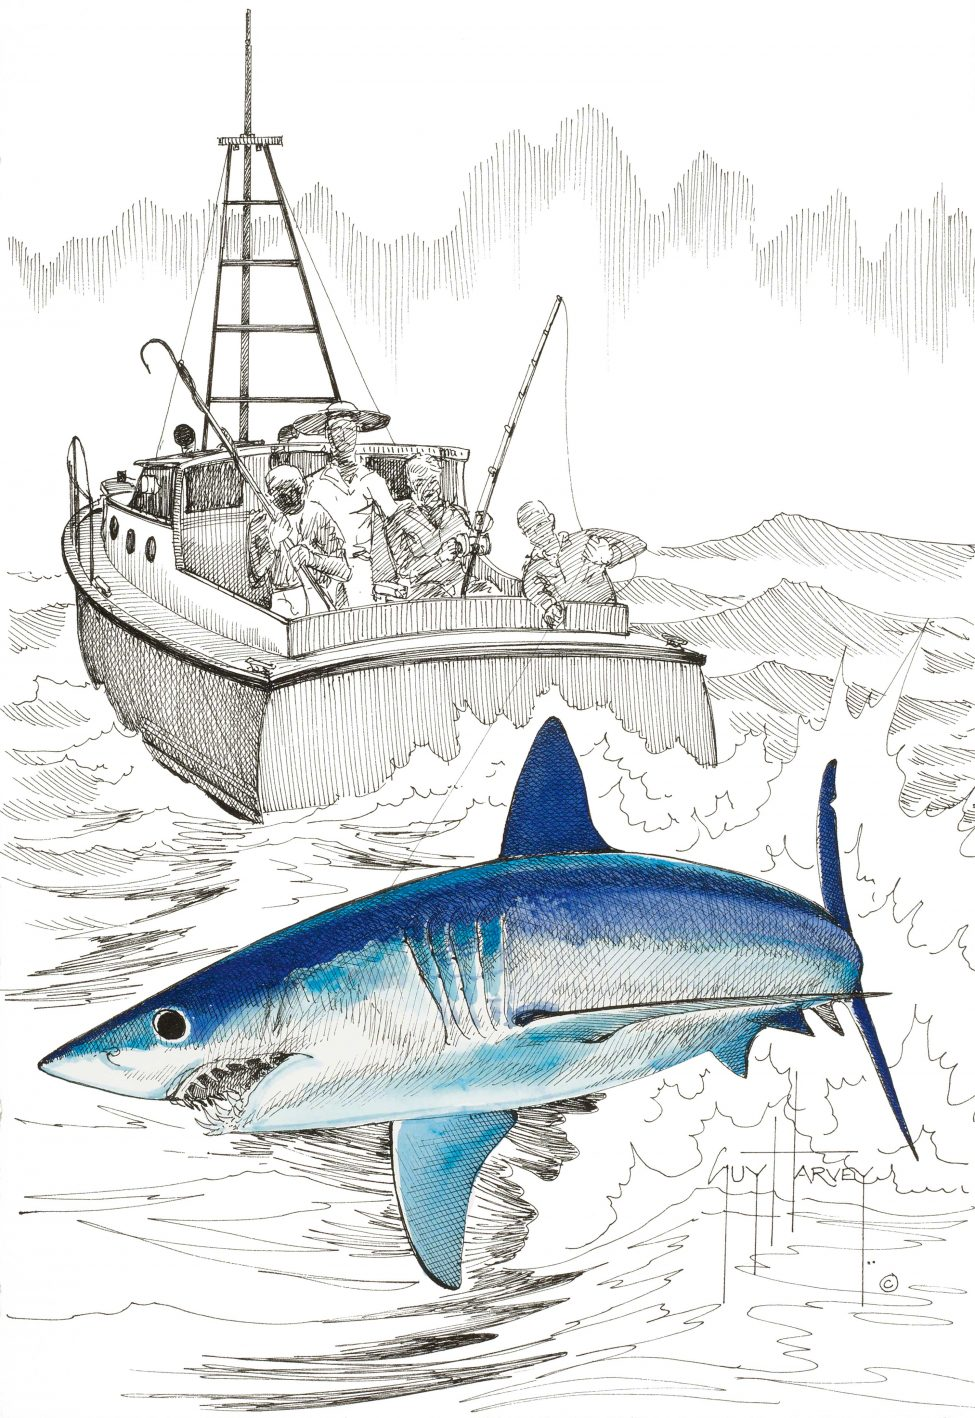 Artworks by Guy Harvey | Guy Harvey Ocean Foundation